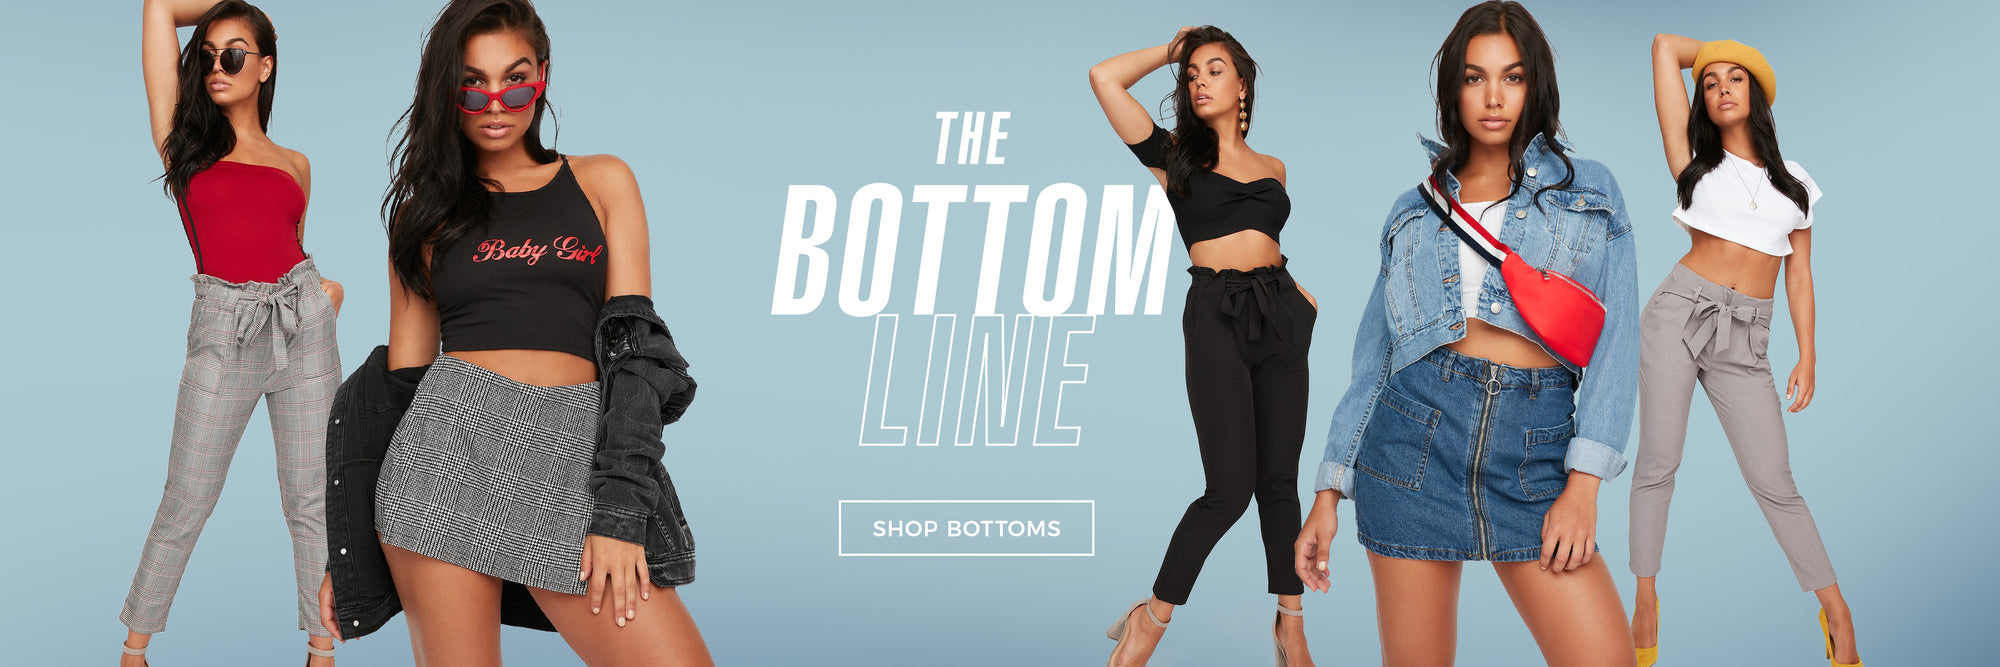 The Bottom Line - Shop Bottoms